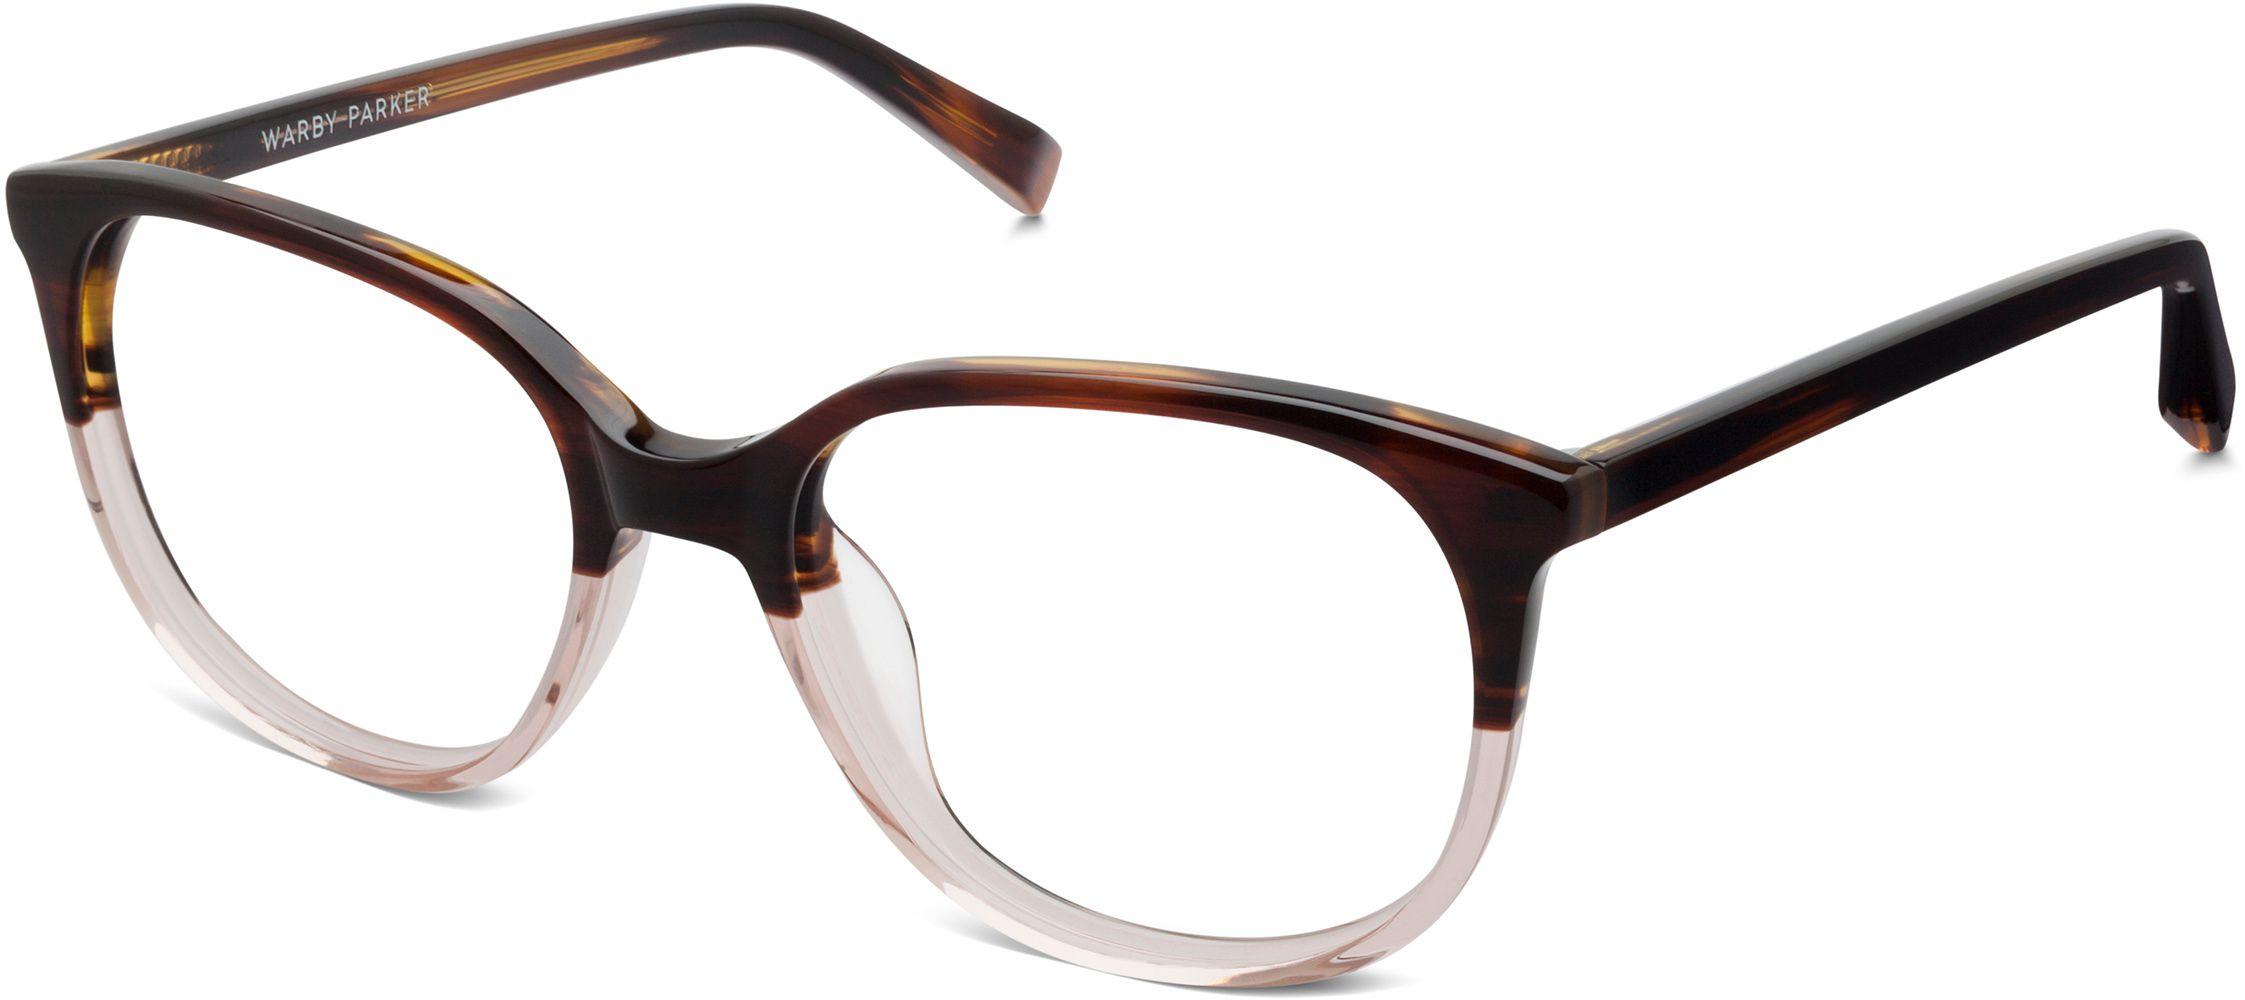 983e8d61e2 Laurel Eyeglasses in Tea Rose Fade for Women